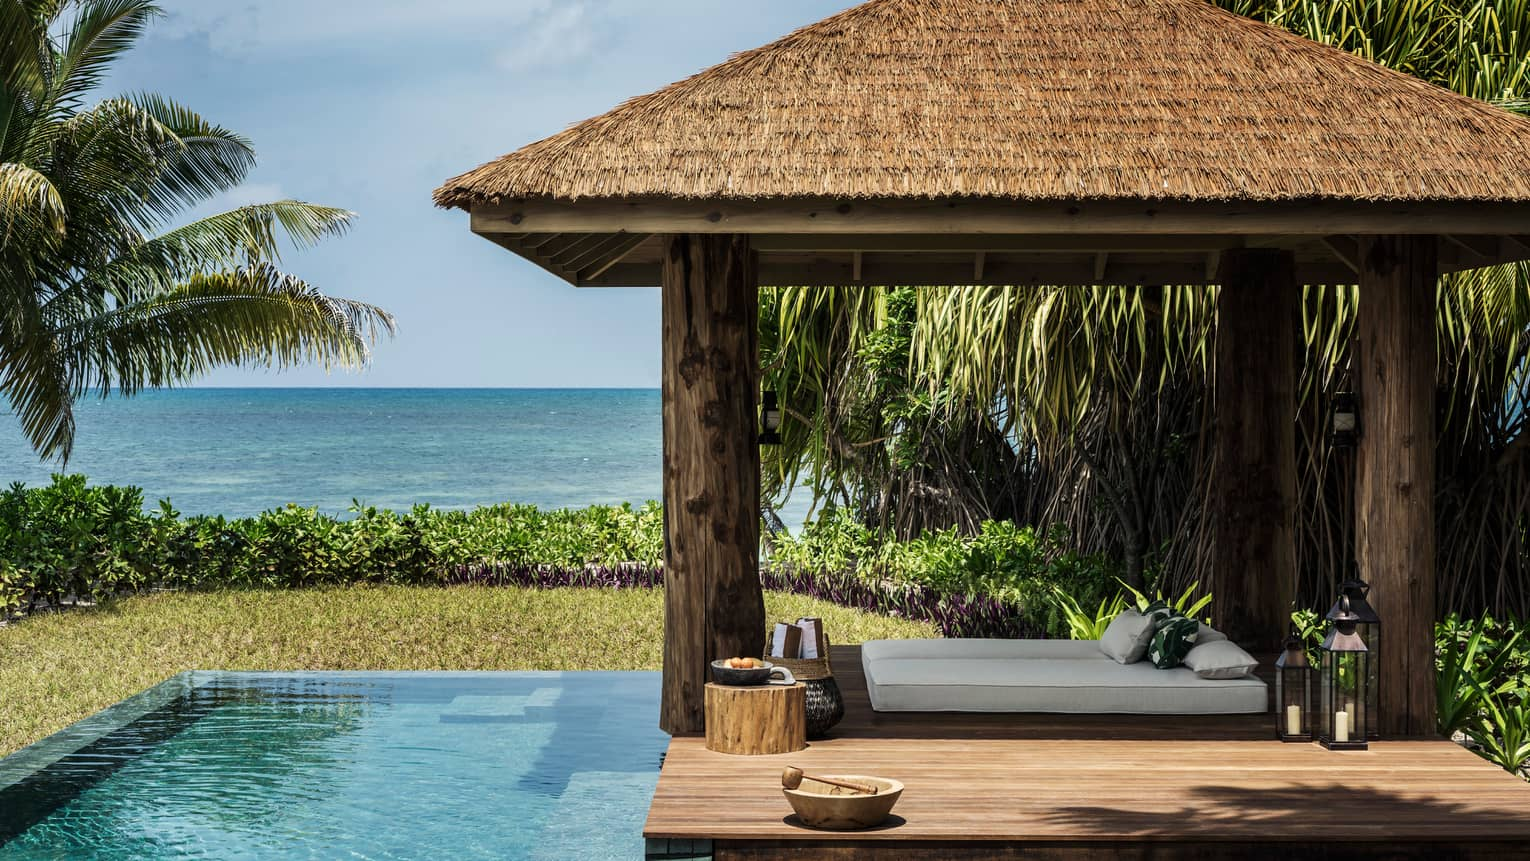 Four-pillar wooden cabana and infinity edge pool, sea in the distance